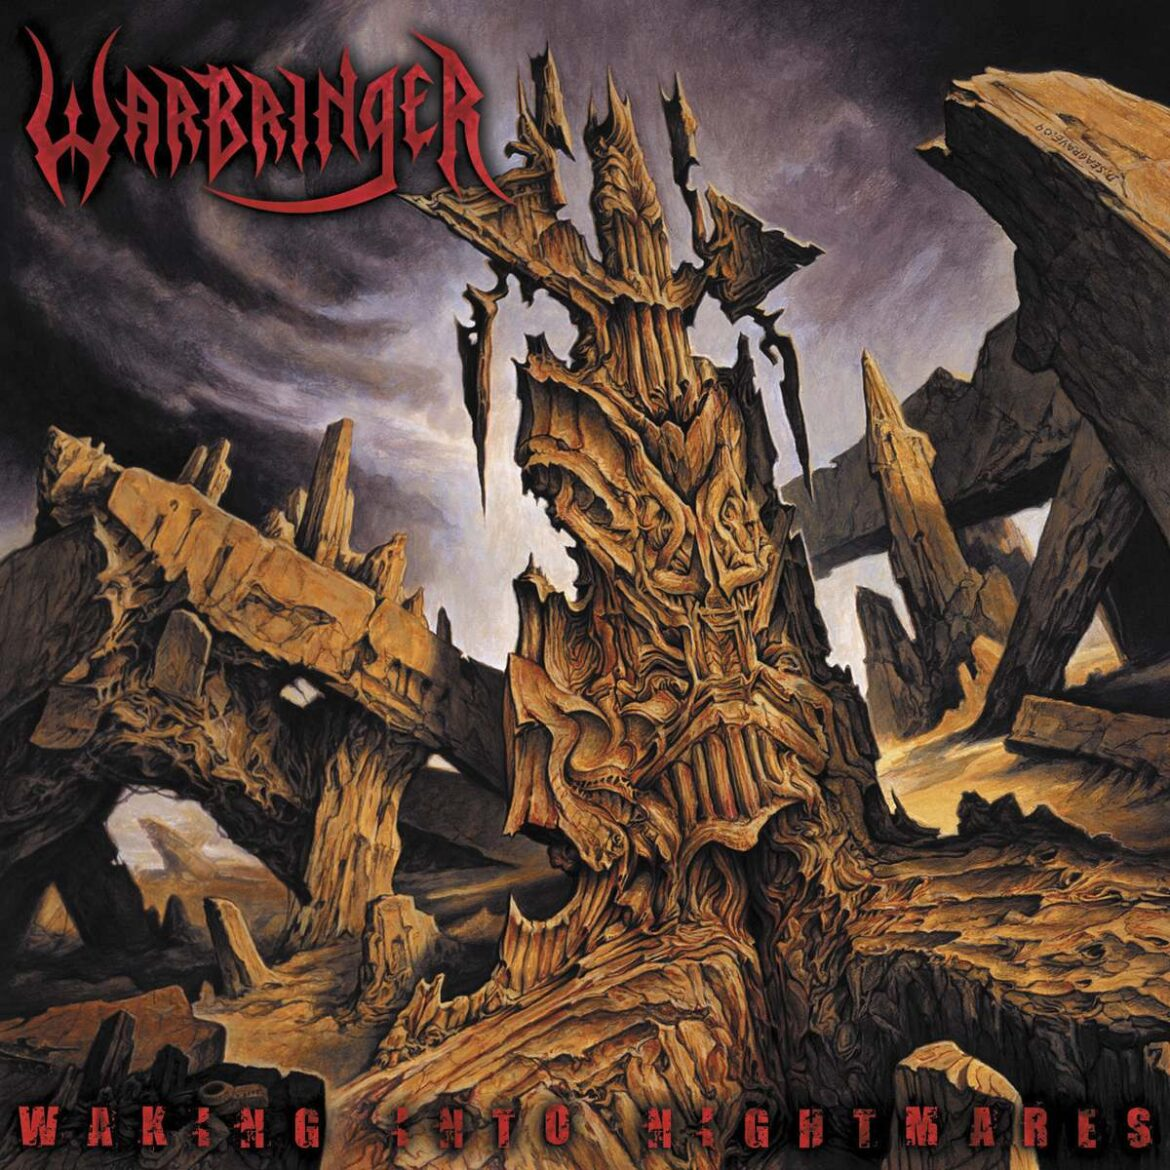 An Interview With Warbringer!